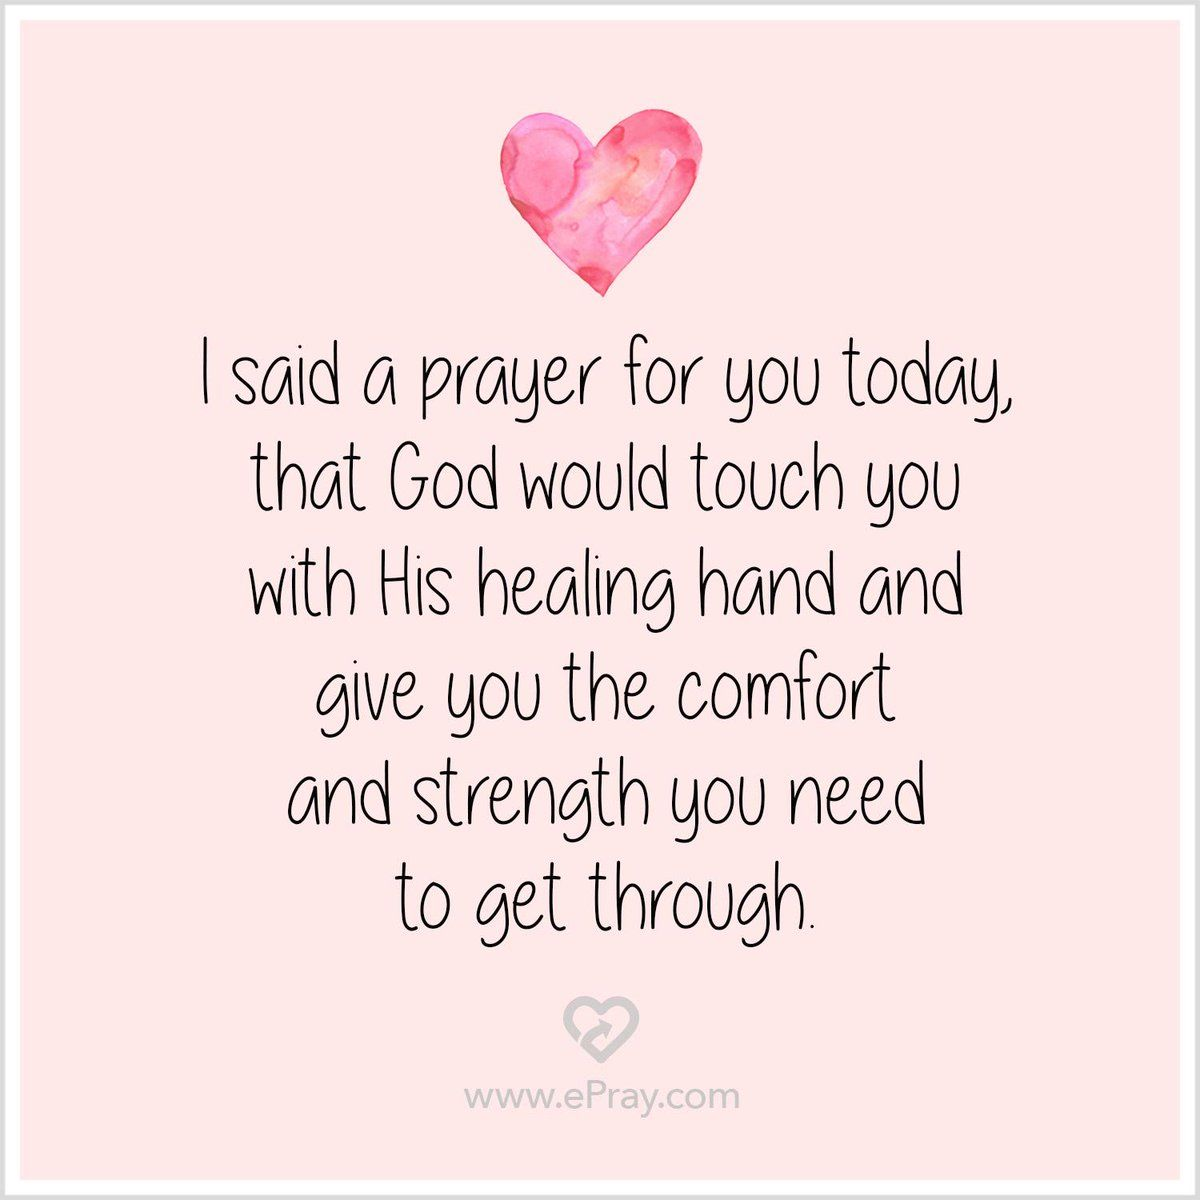 picture regarding I Said a Prayer for You Today Printable called therapeutic prayer for a good friend - Google Appear Rates